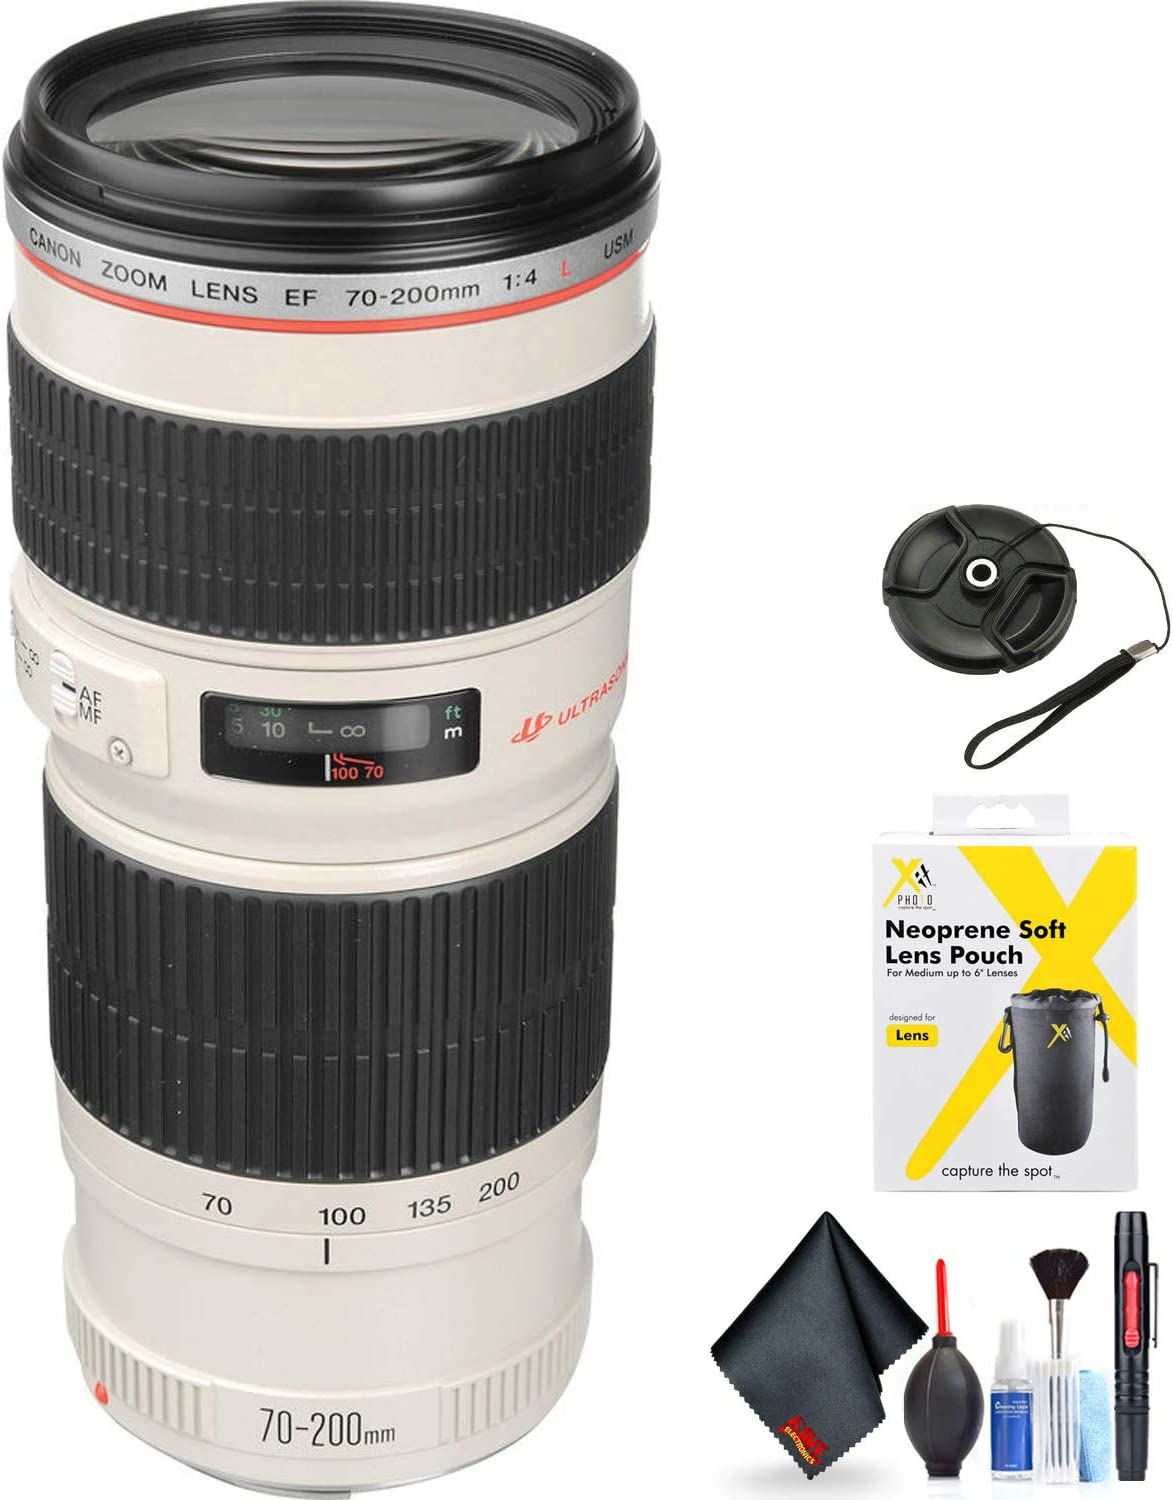 Canon EF 70-200mm f/4L USM Telephoto Zoom Lens for Canon EF Mount + Accessories (International Model with 2 Year Warrant